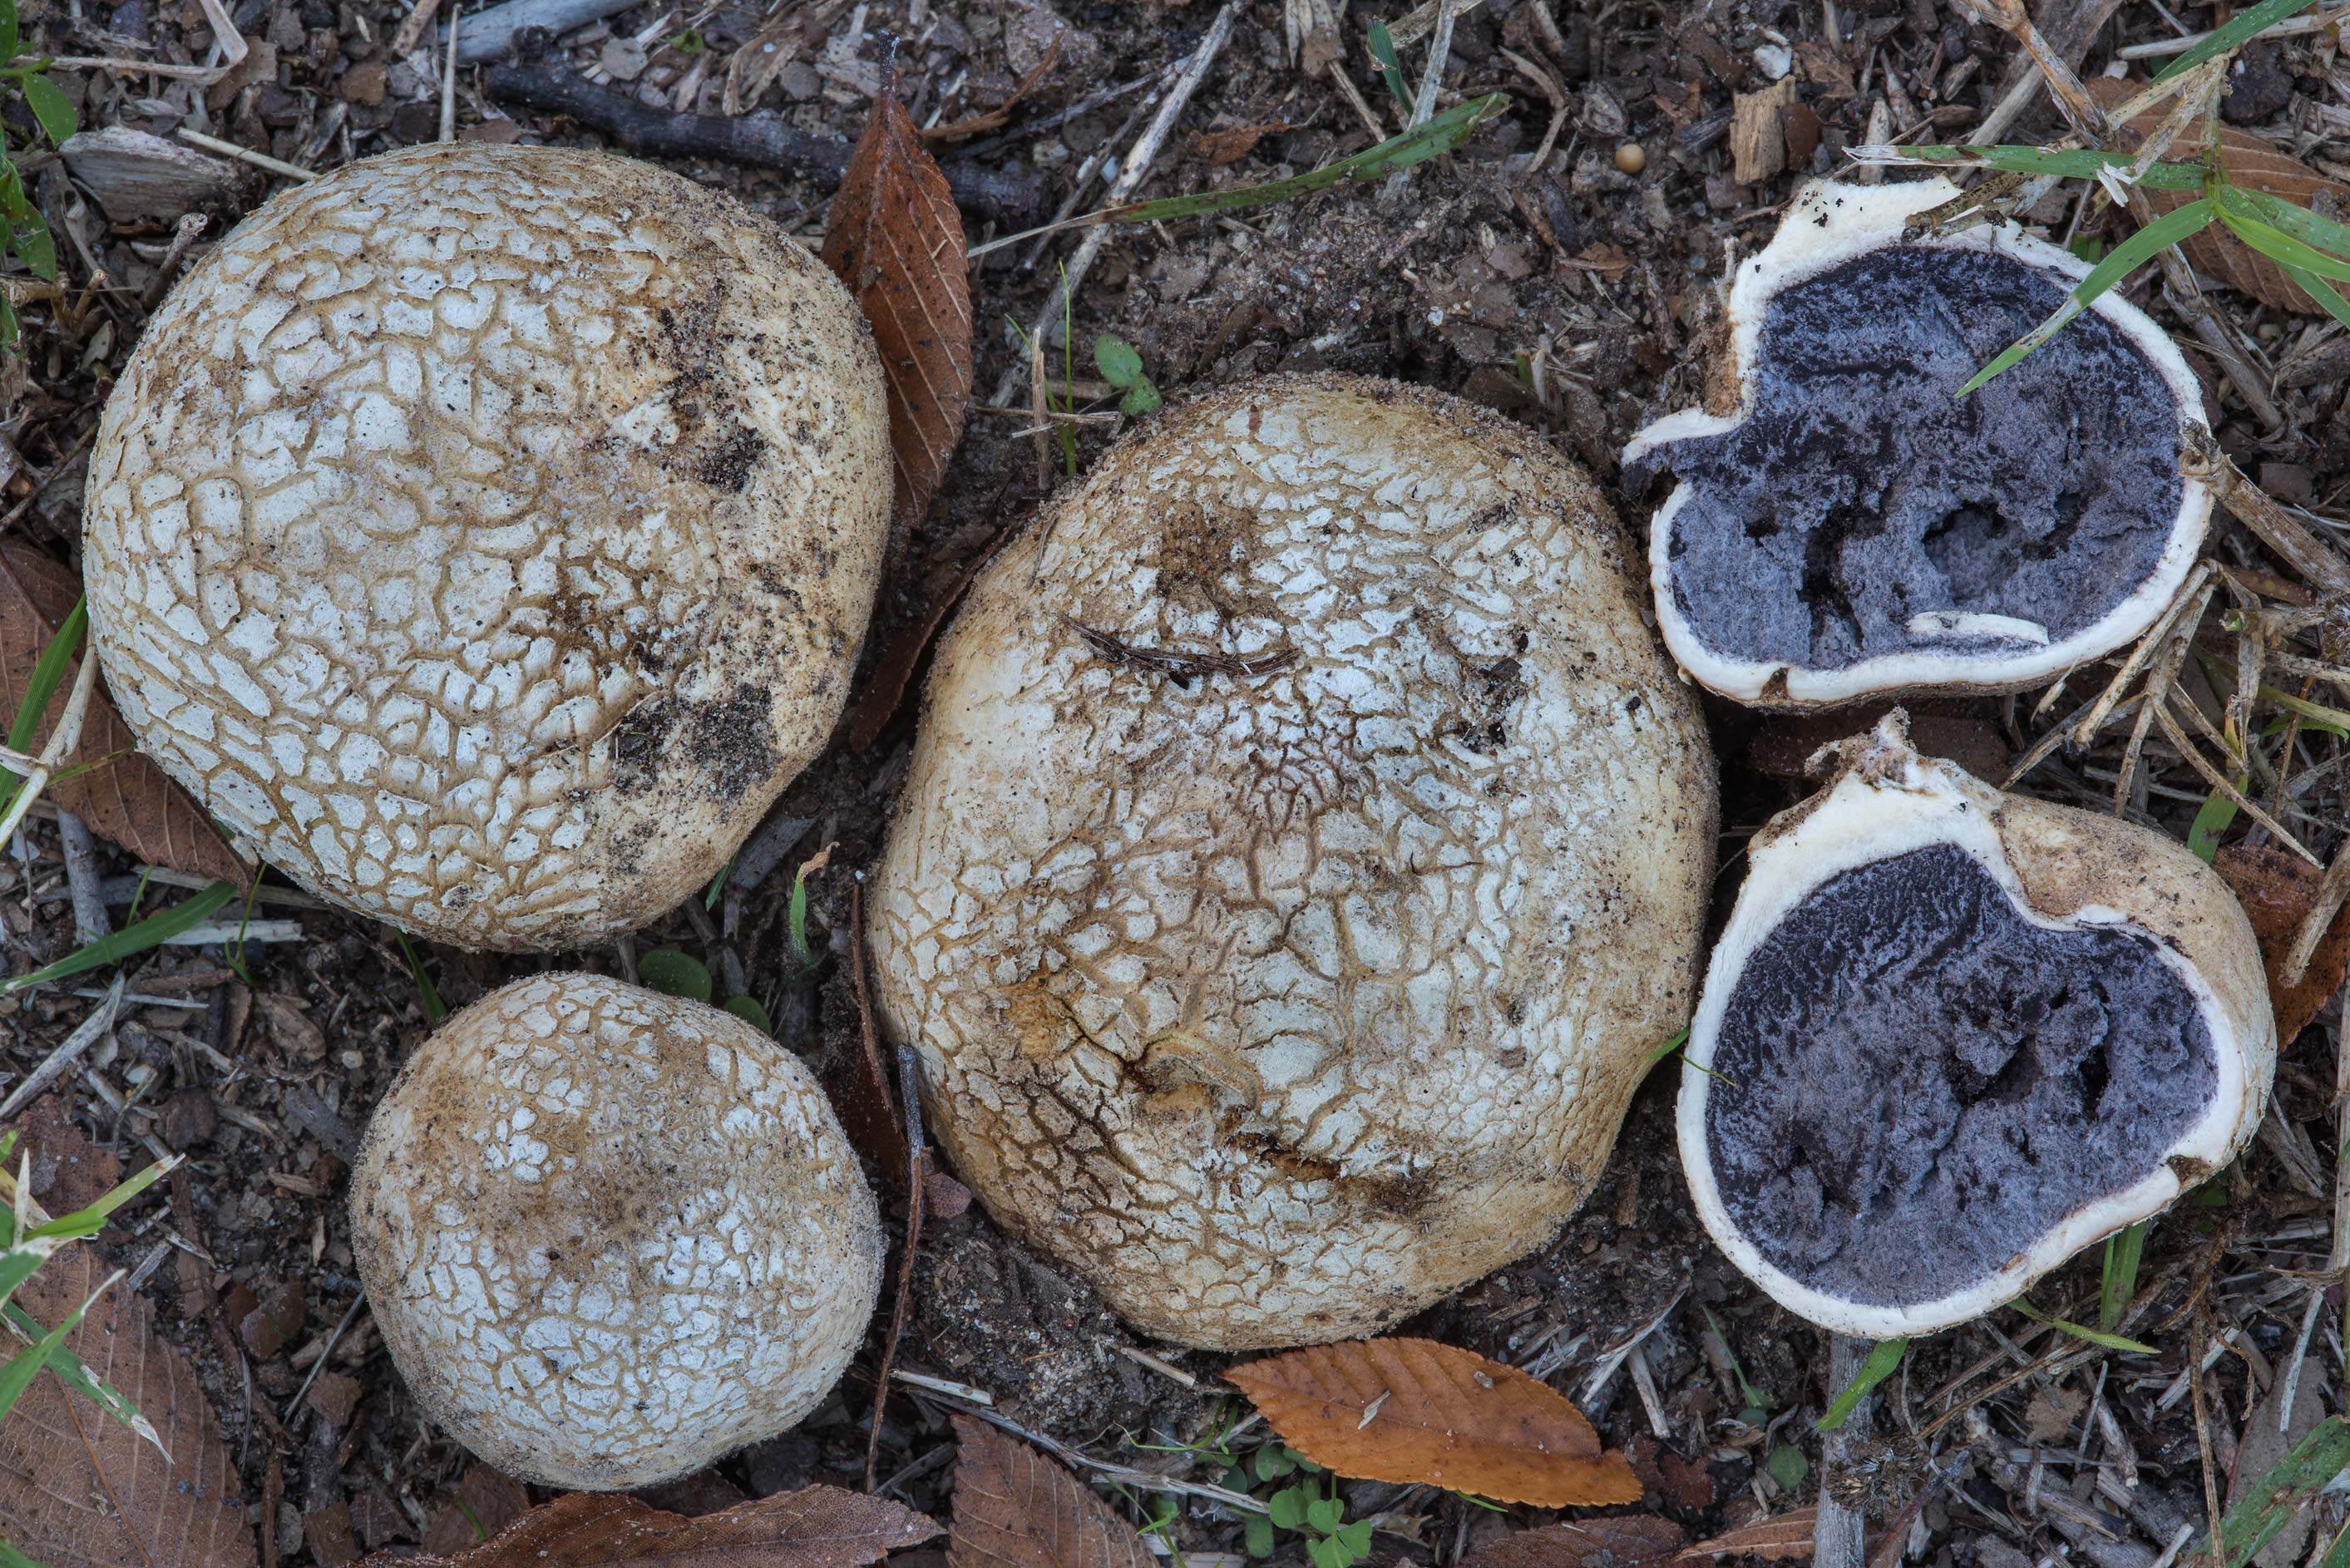 Tuff puffball mushrooms (Scleroderma texense) in...Ashburn St.. College Station, Texas